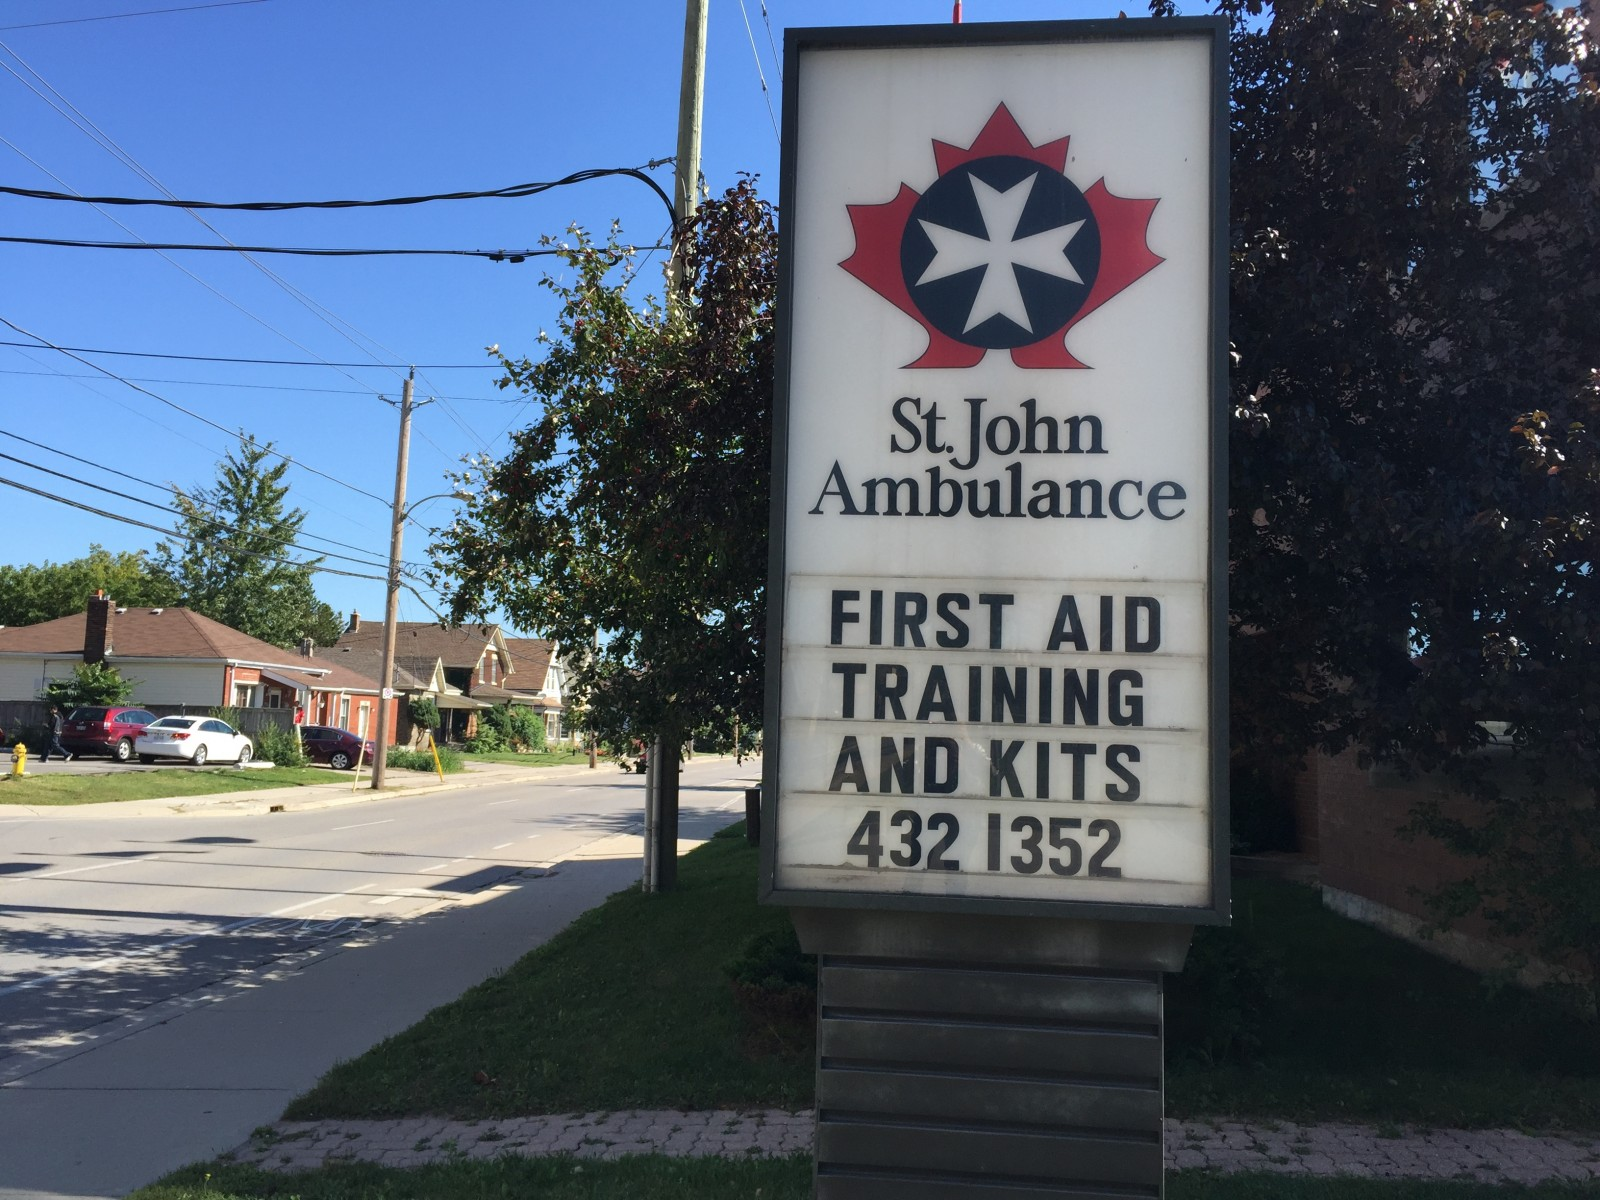 St. John's Ambulance pet first aid training